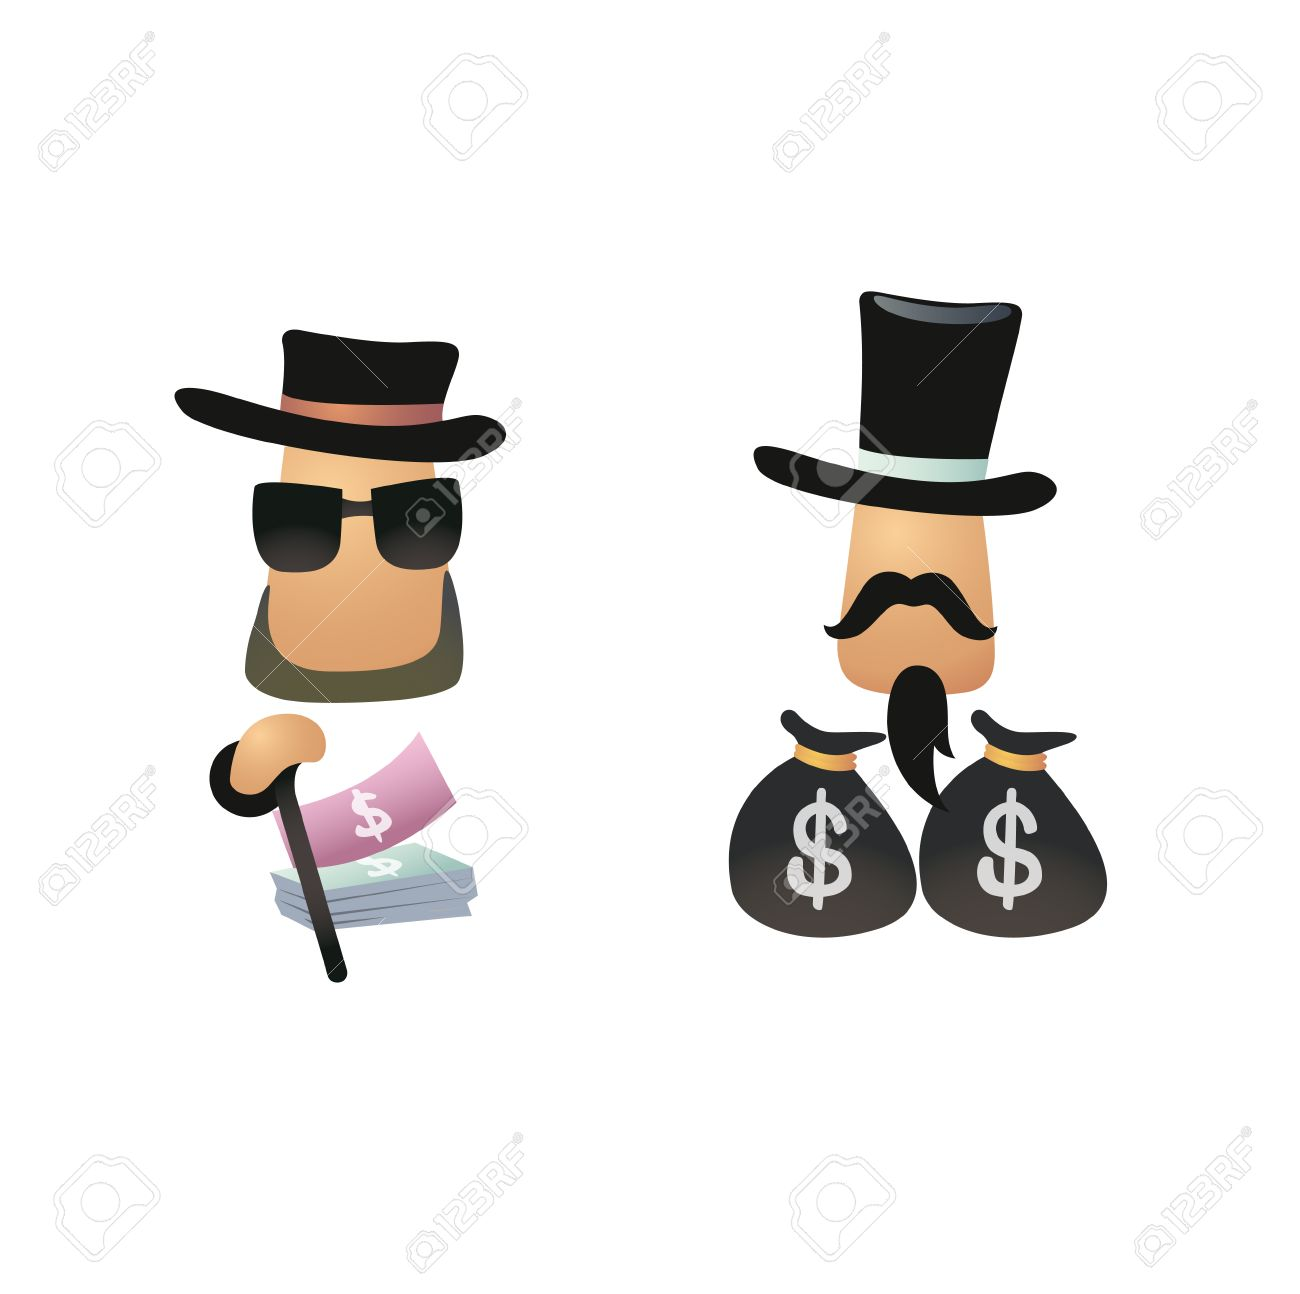 icon of rich people have money or businessman Stock Vector - 25996432